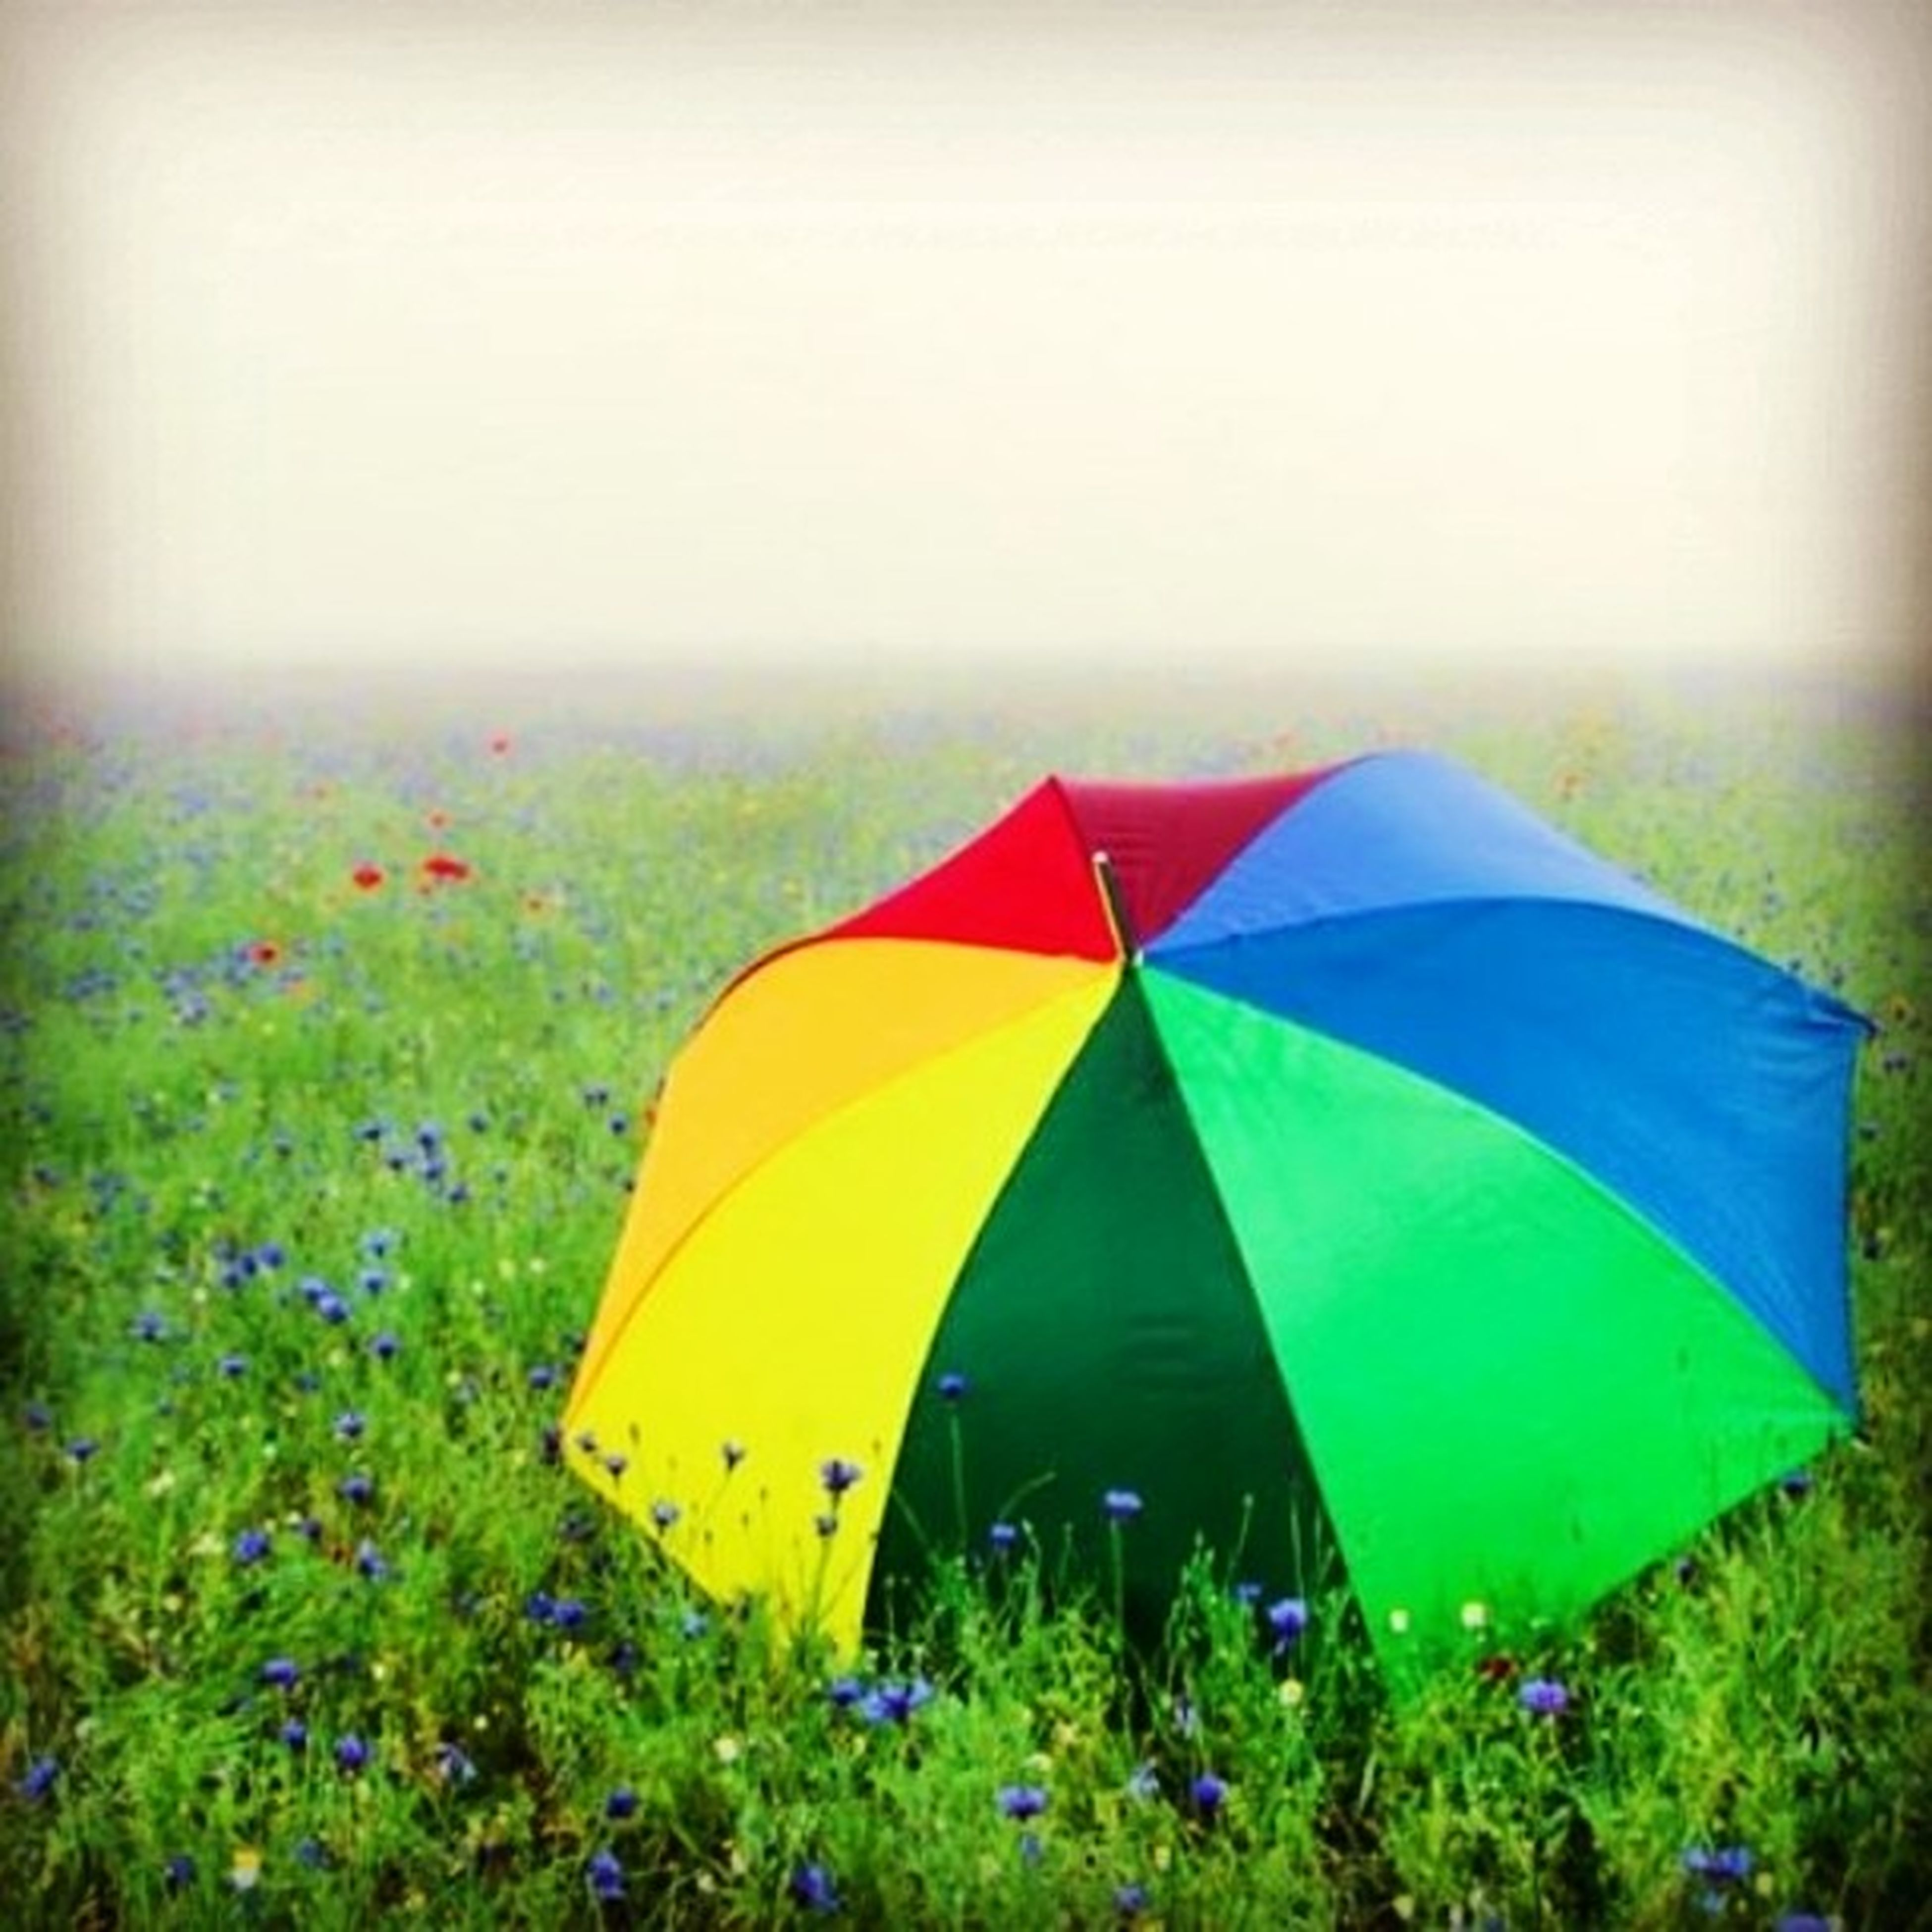 grass, yellow, multi colored, green color, blue, field, umbrella, clear sky, day, grassy, nature, tranquility, outdoors, beauty in nature, green, no people, colorful, landscape, protection, close-up